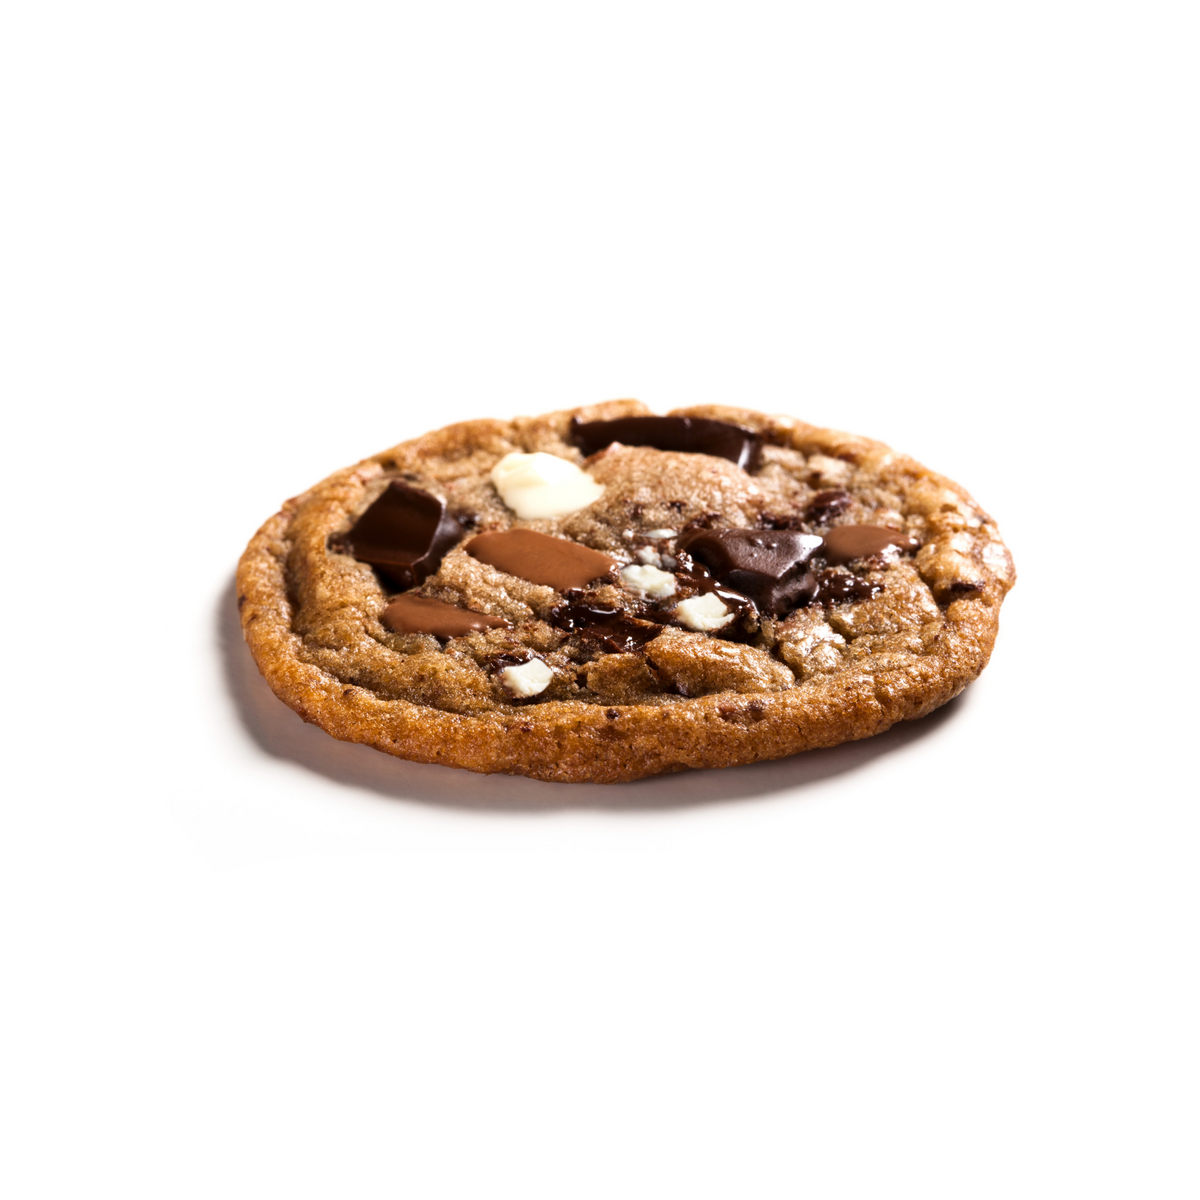 Ménage à Trois® cookie with milk, white, and dark chocolate chunks